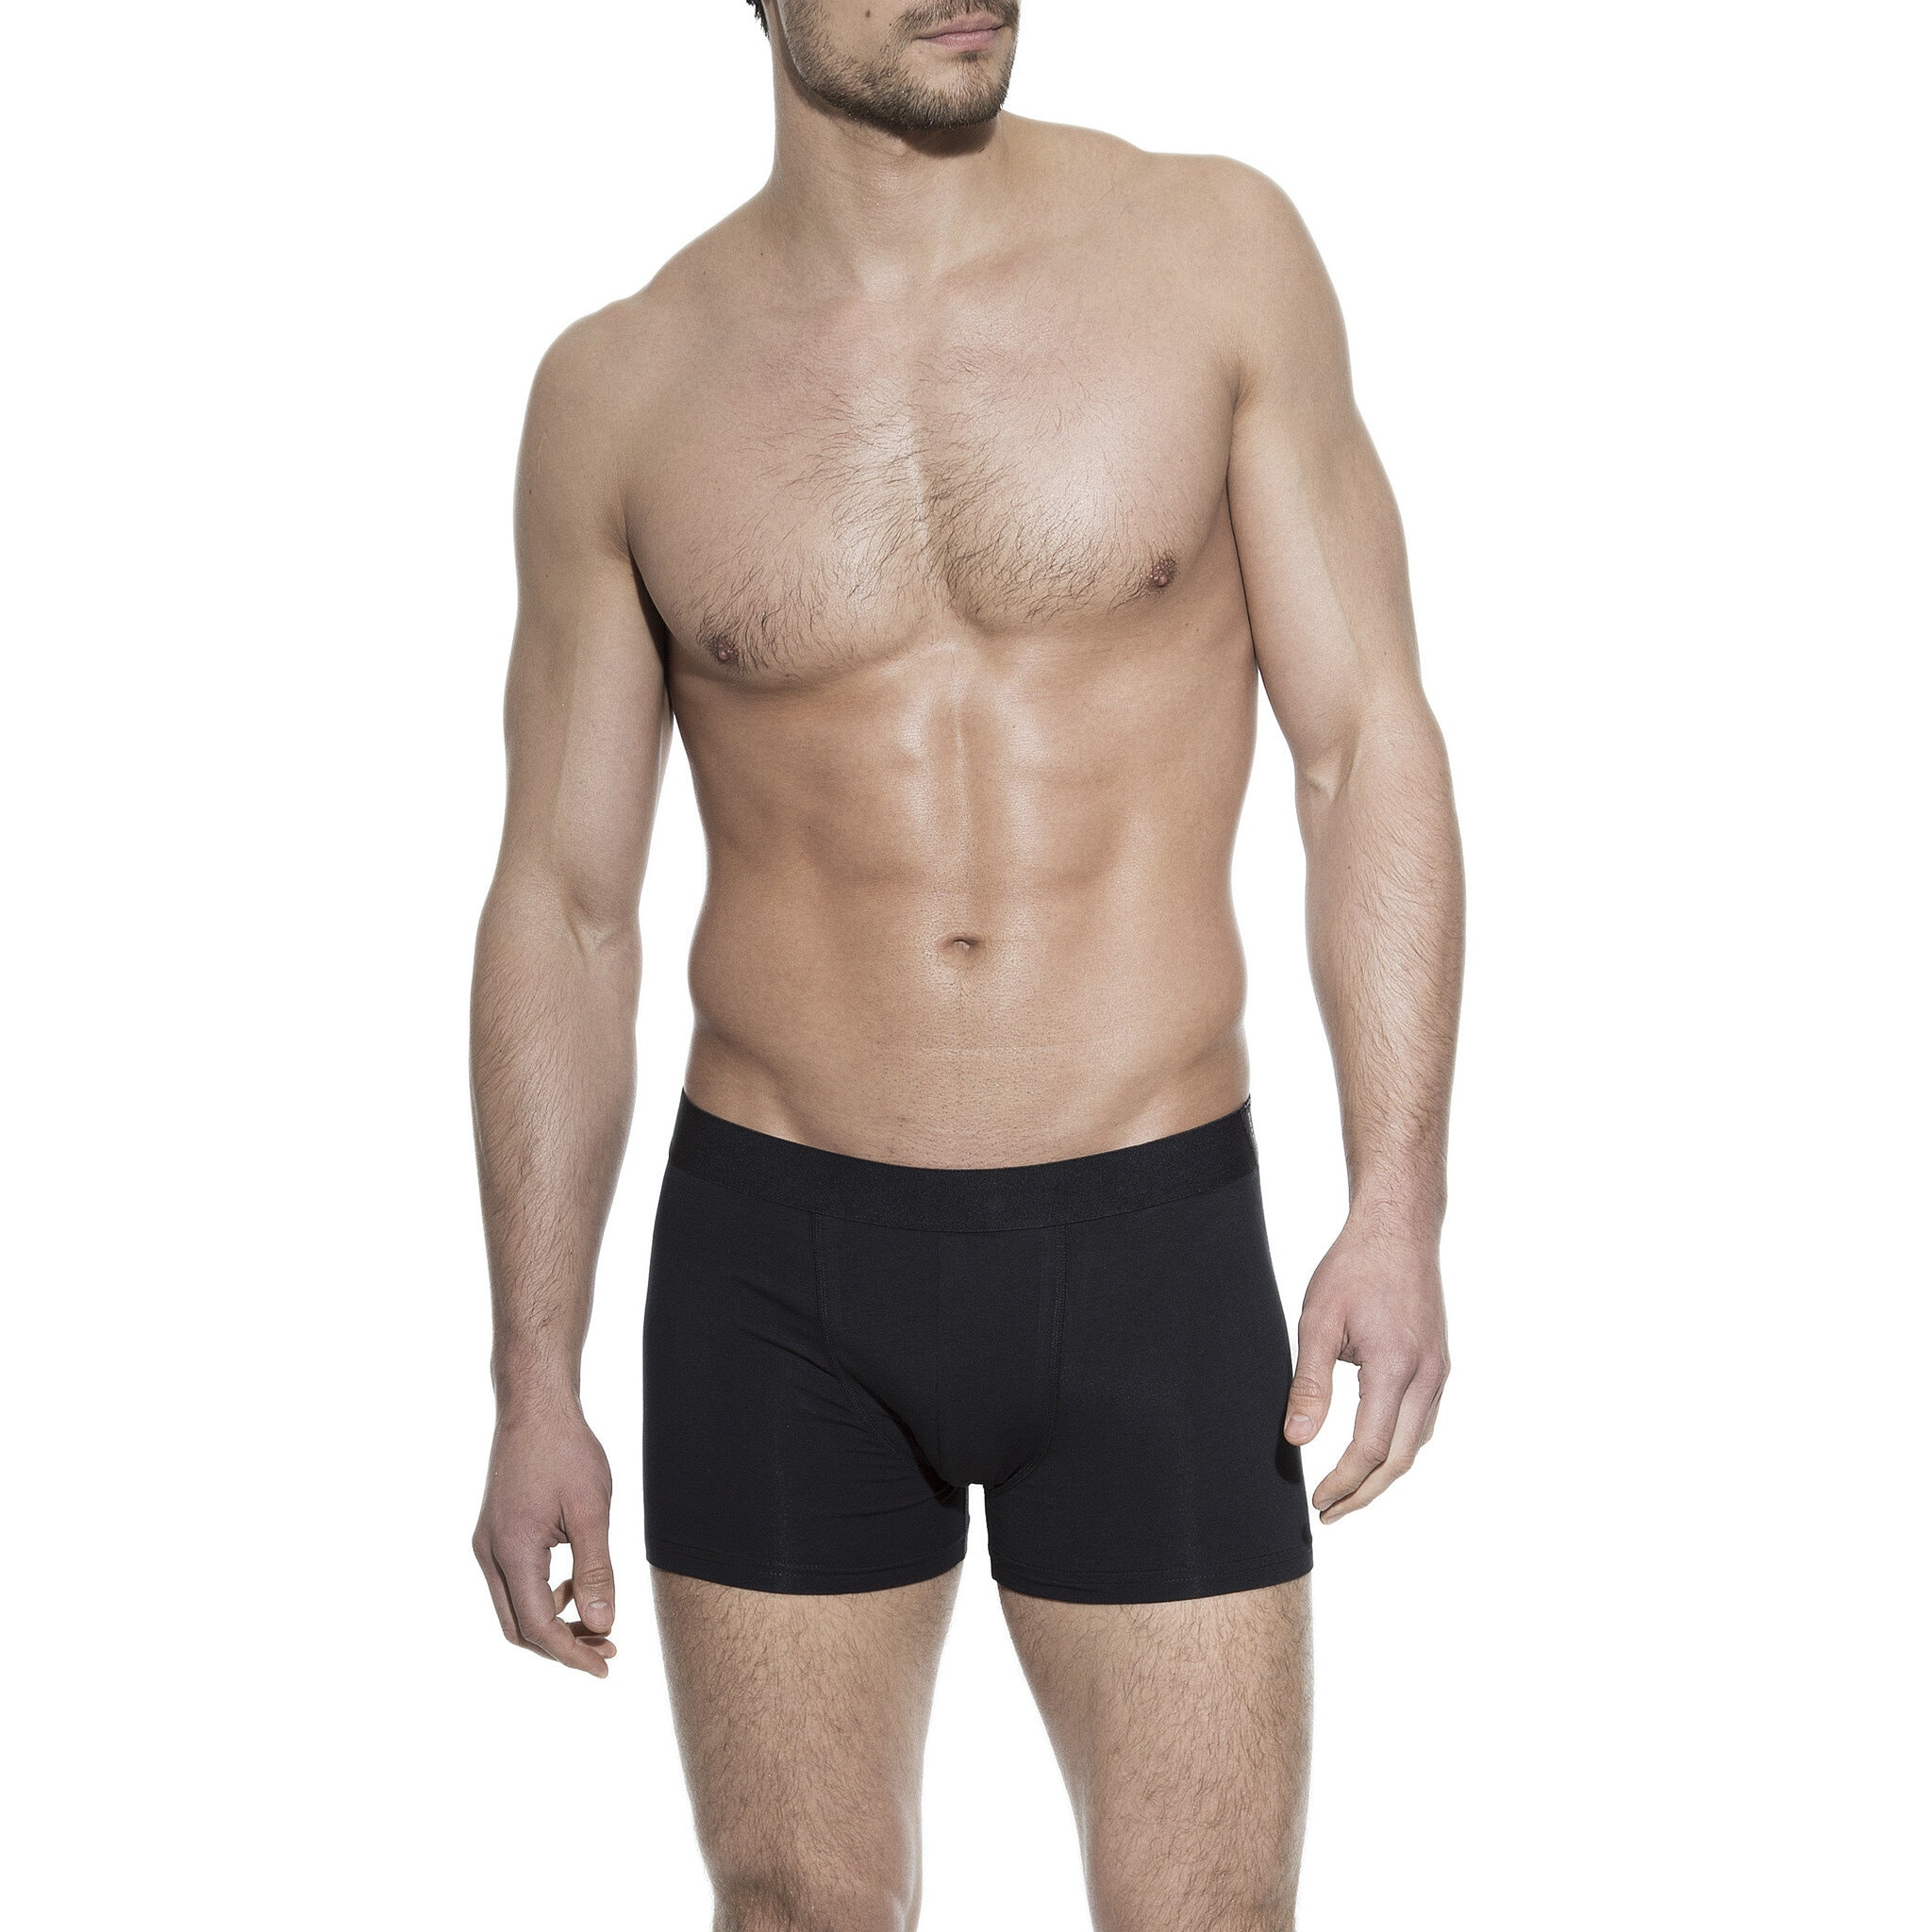 202202_Man_Boxer-Brief_black_1